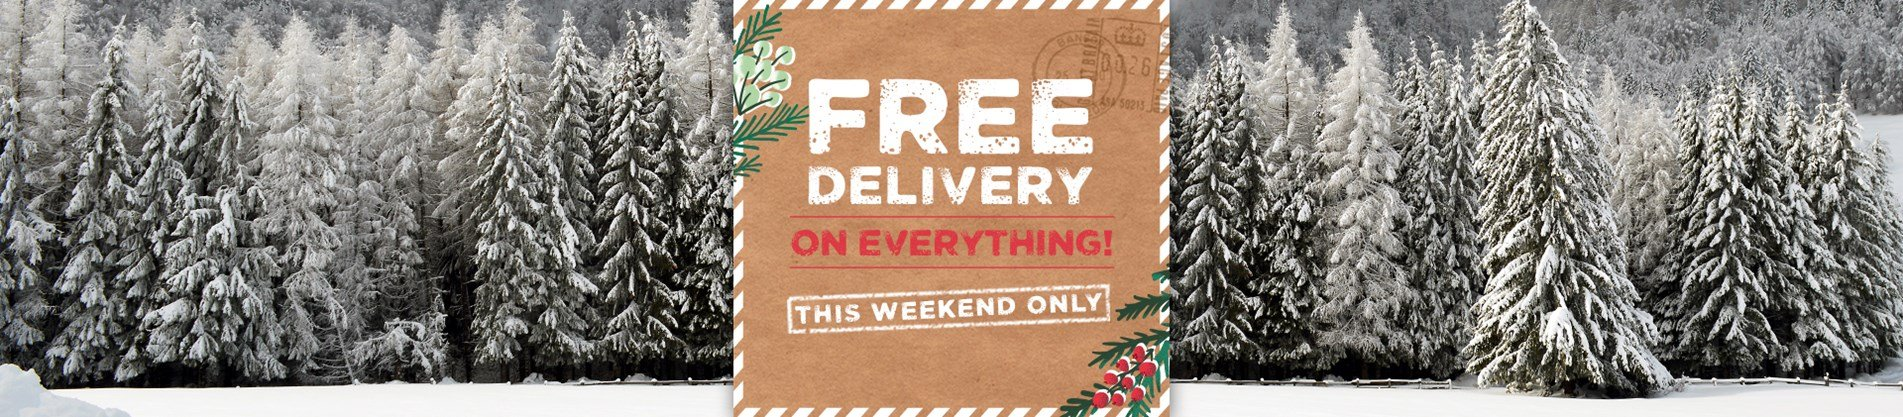 Free Delivery On Everything This Weekend Only